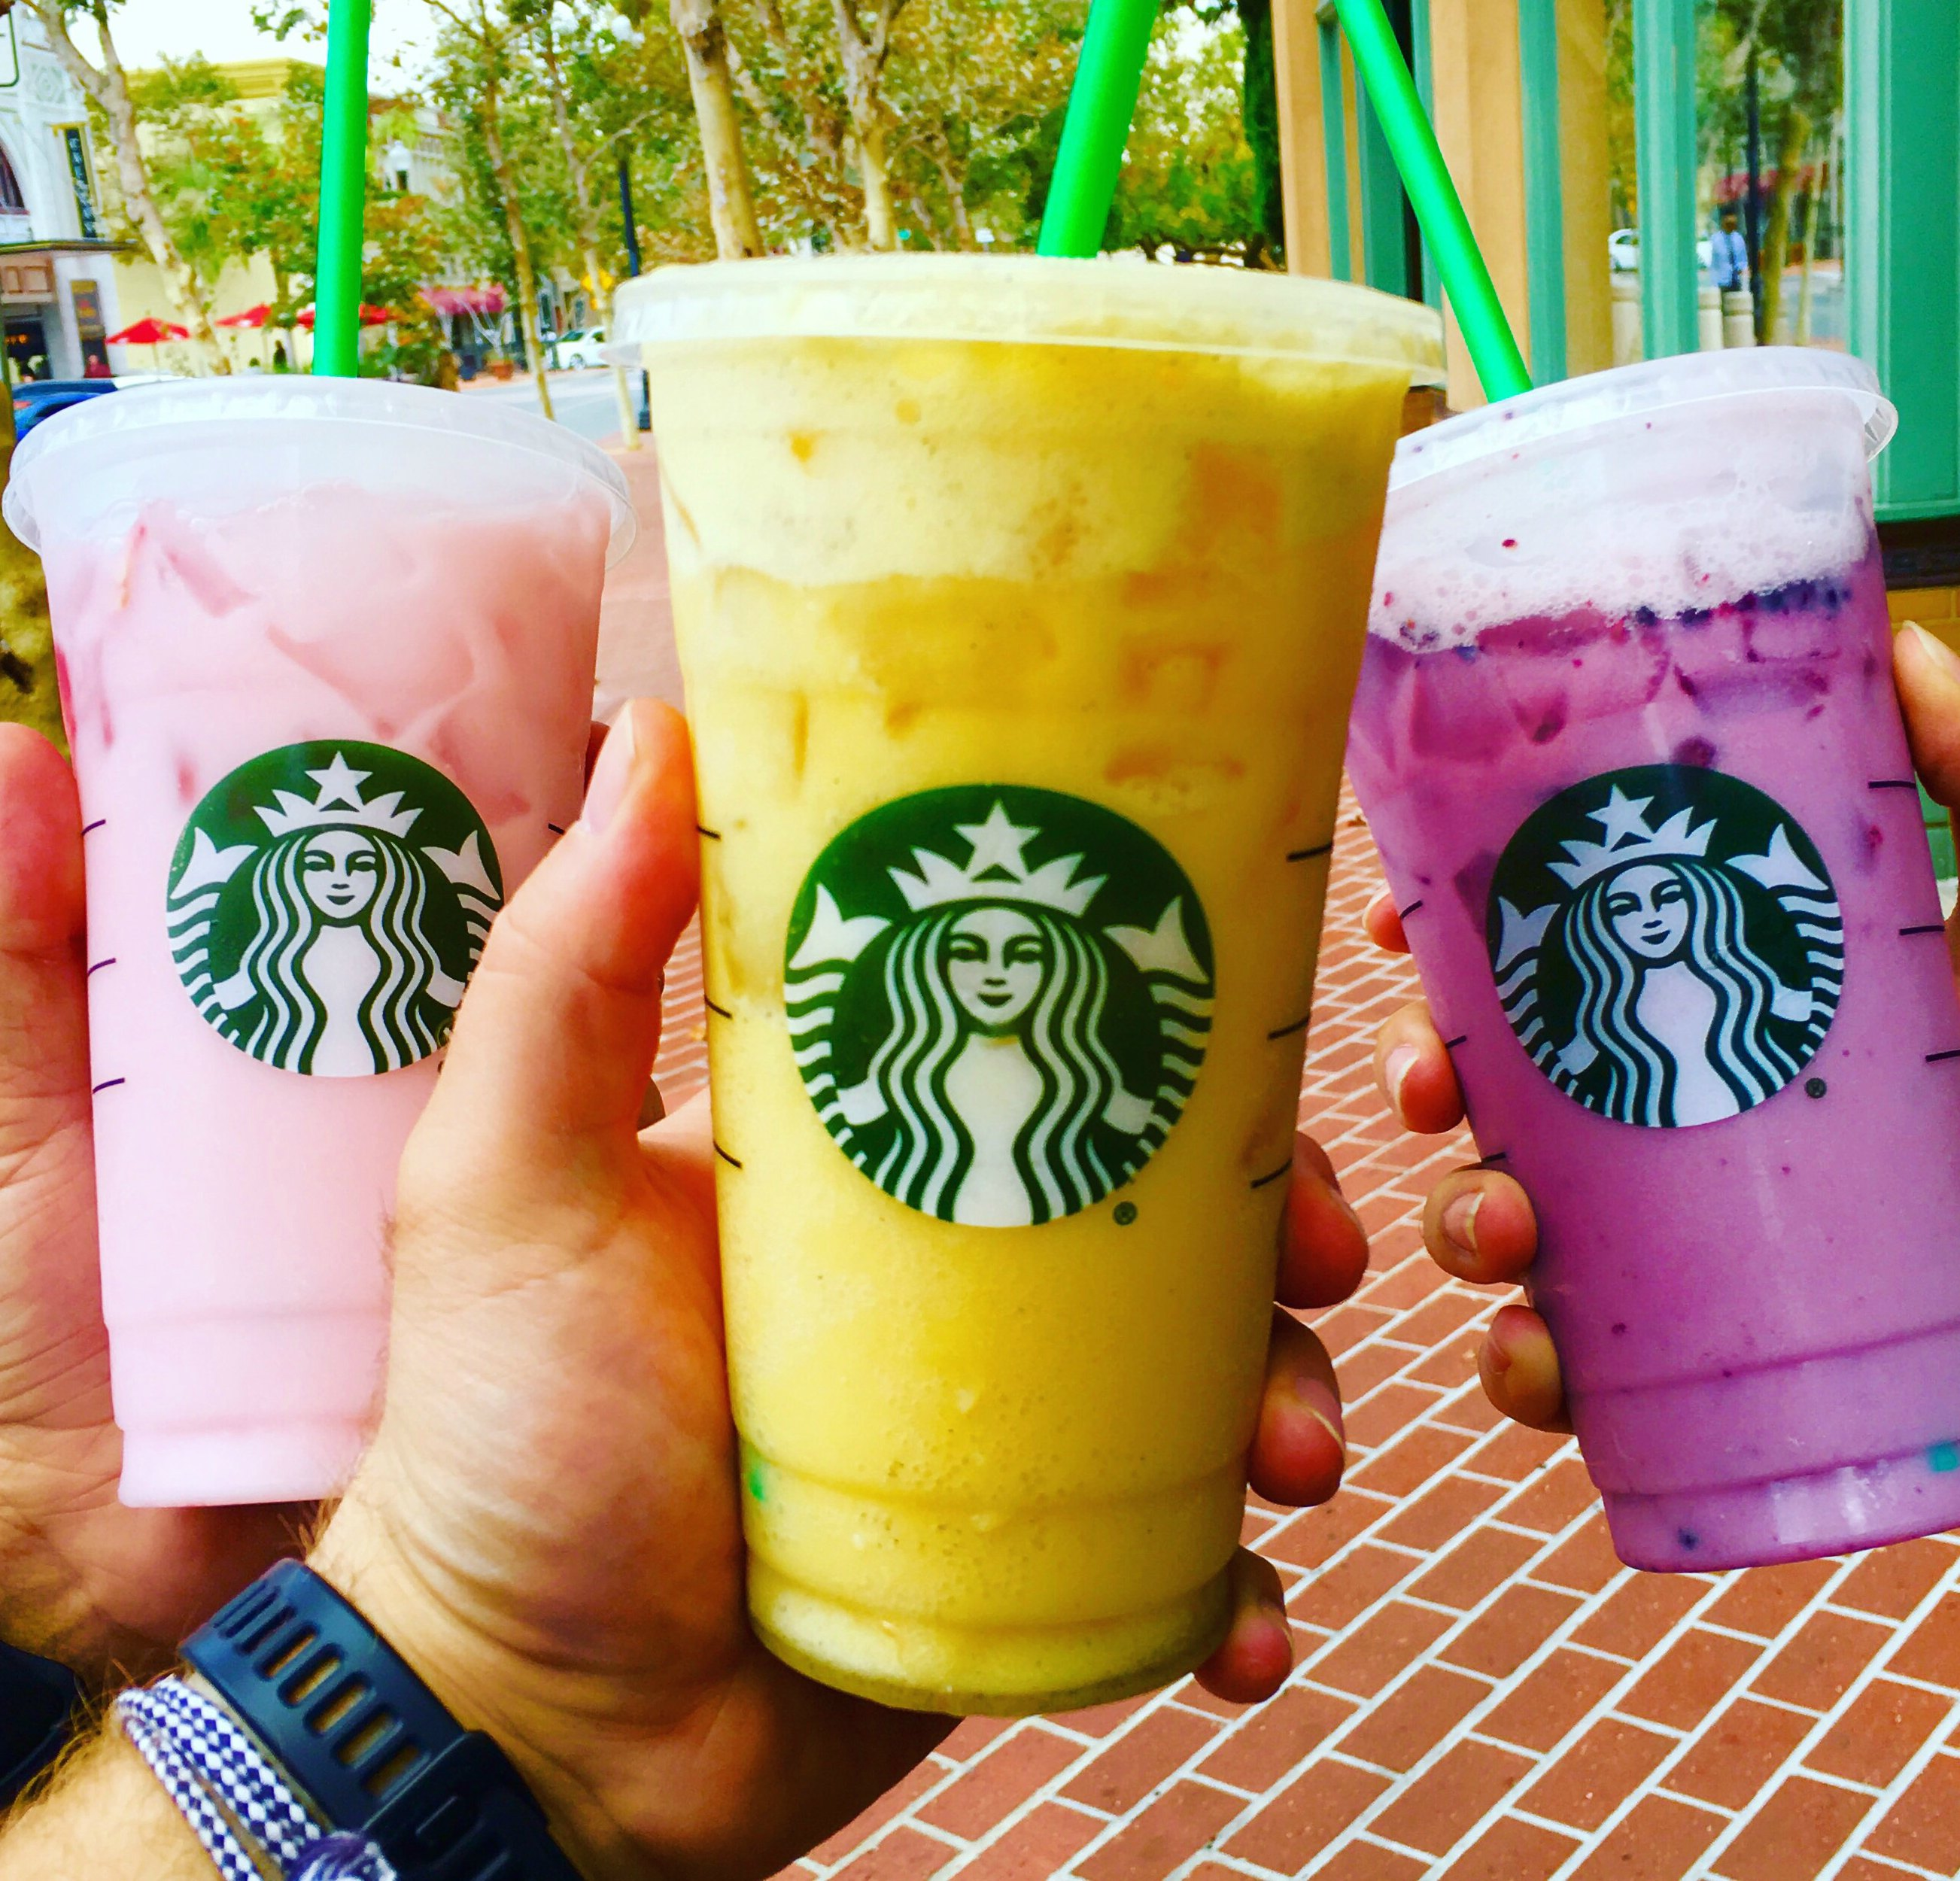 What Starbucks Drinks Can You Have When Pregnant